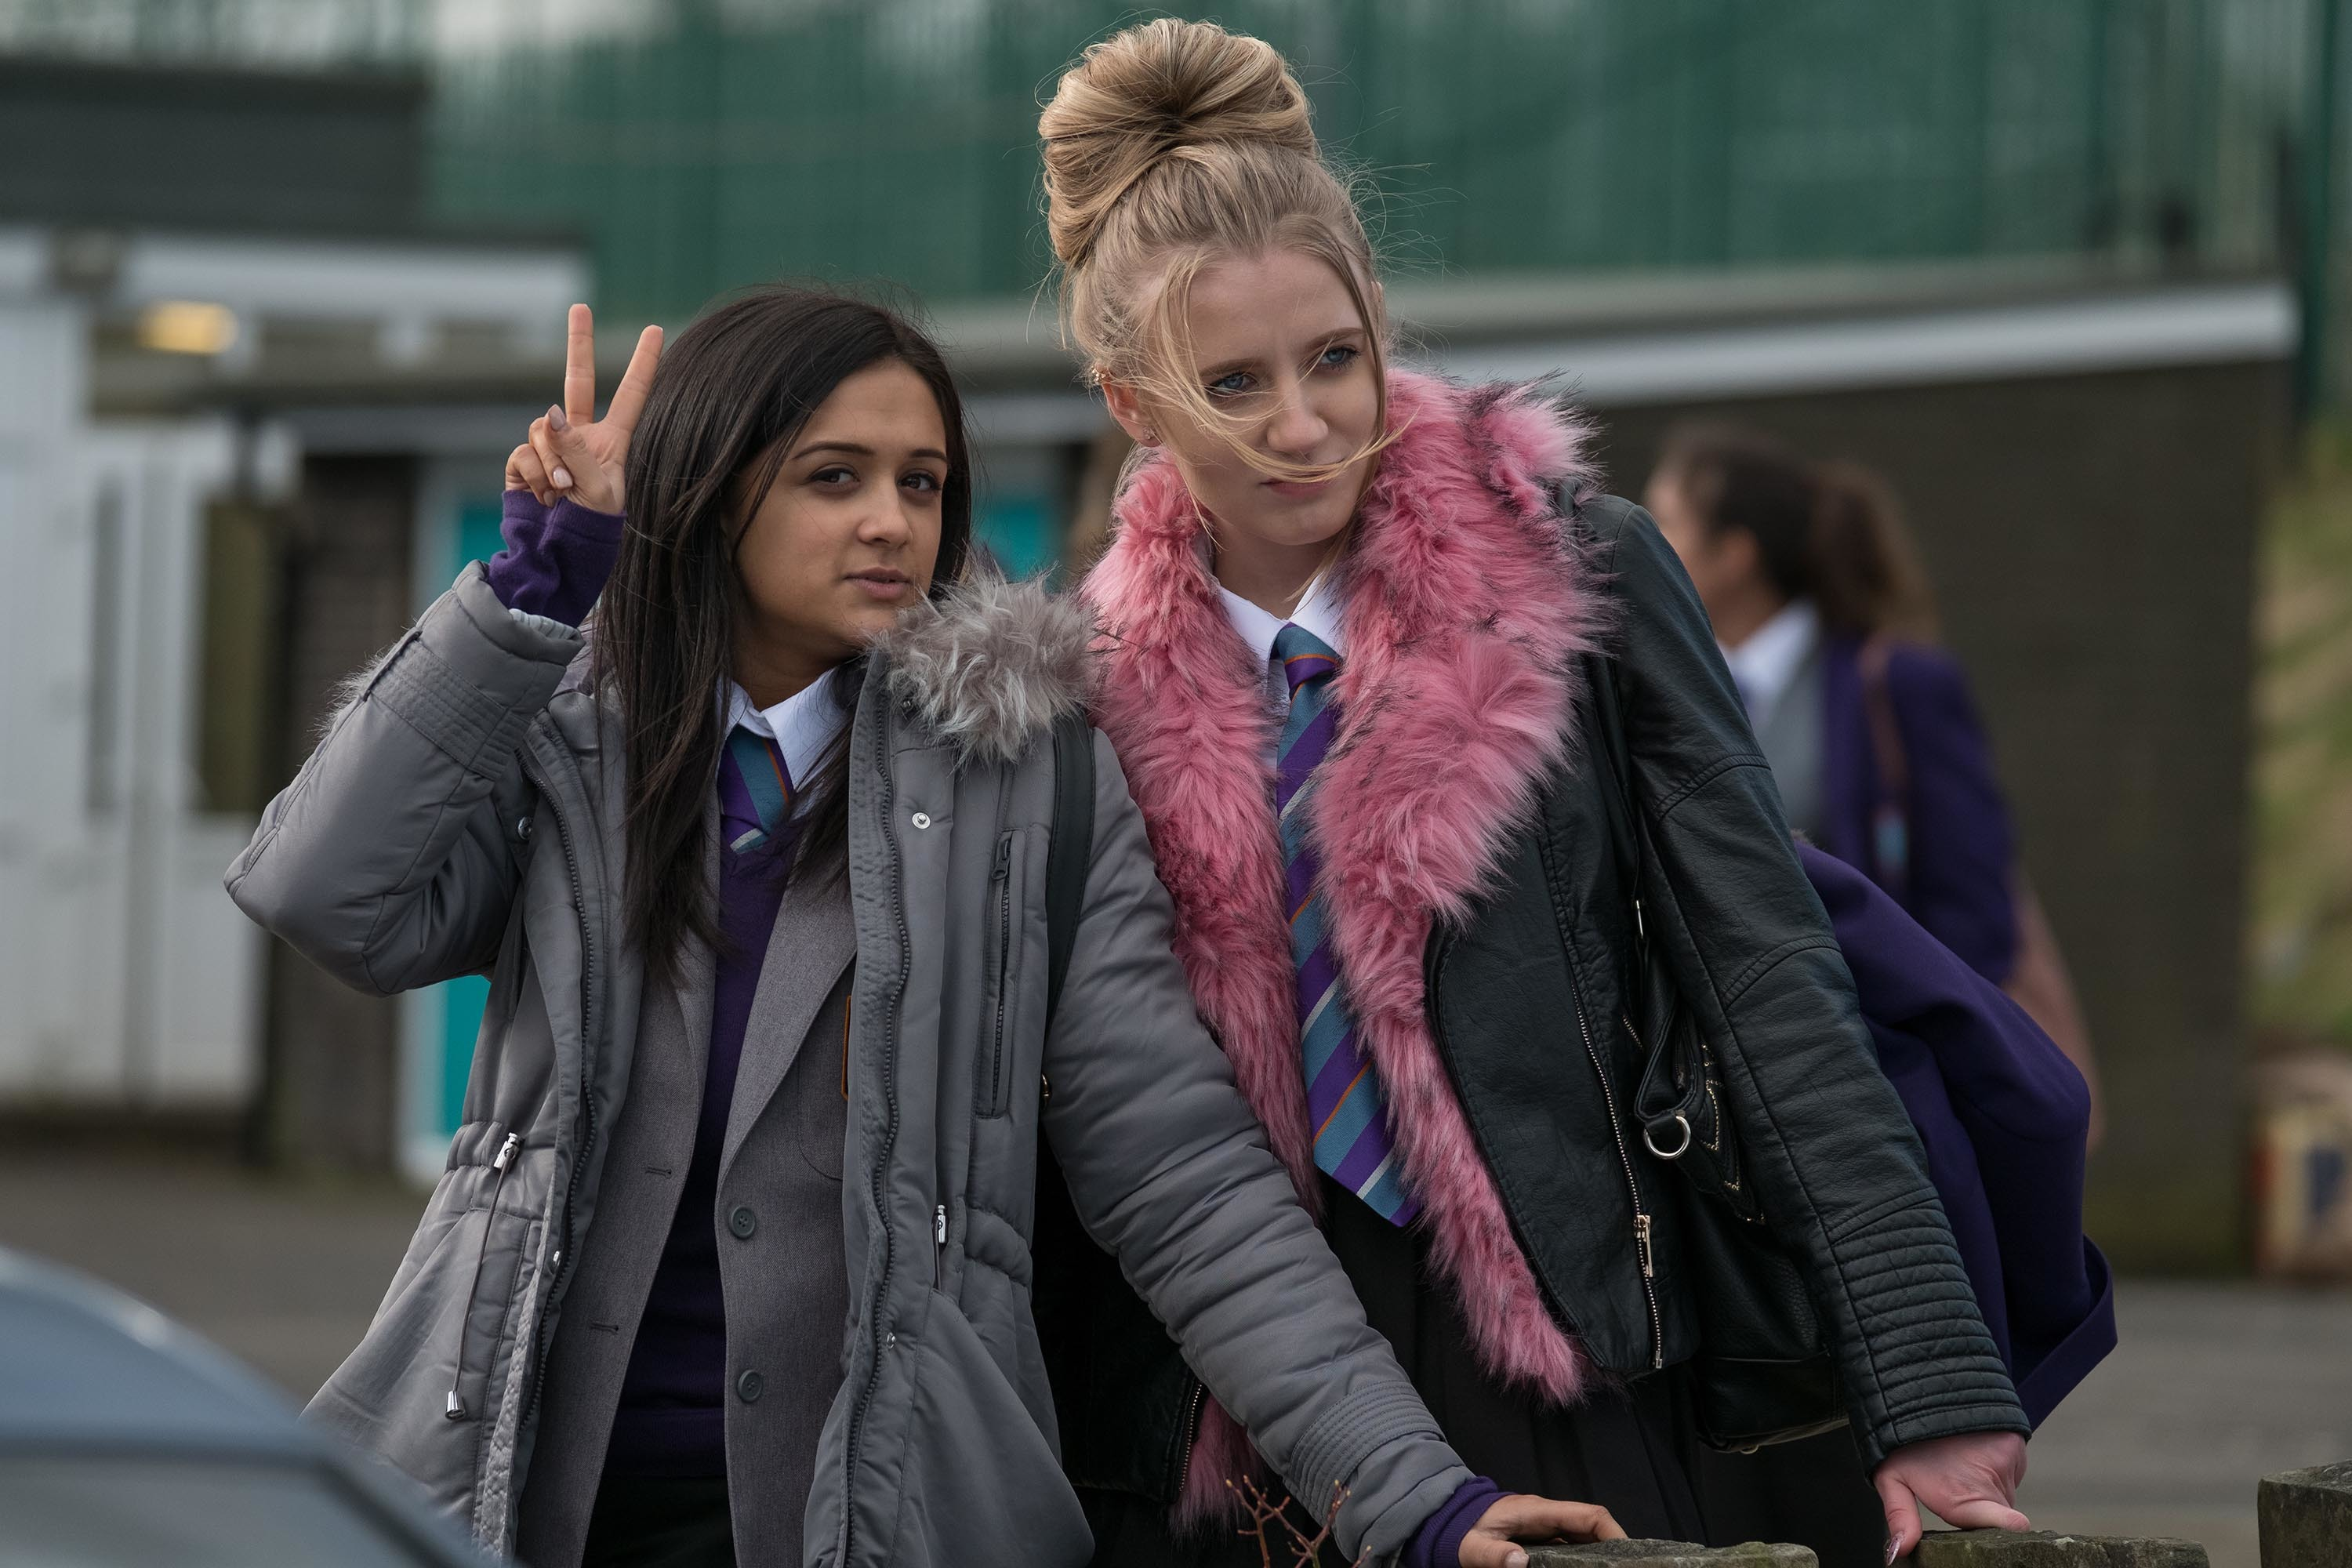 Amy Leigh Hickman as Nasreen Paracha and Poppy Lee Friar as Missy Booth in Ackley Bridge.